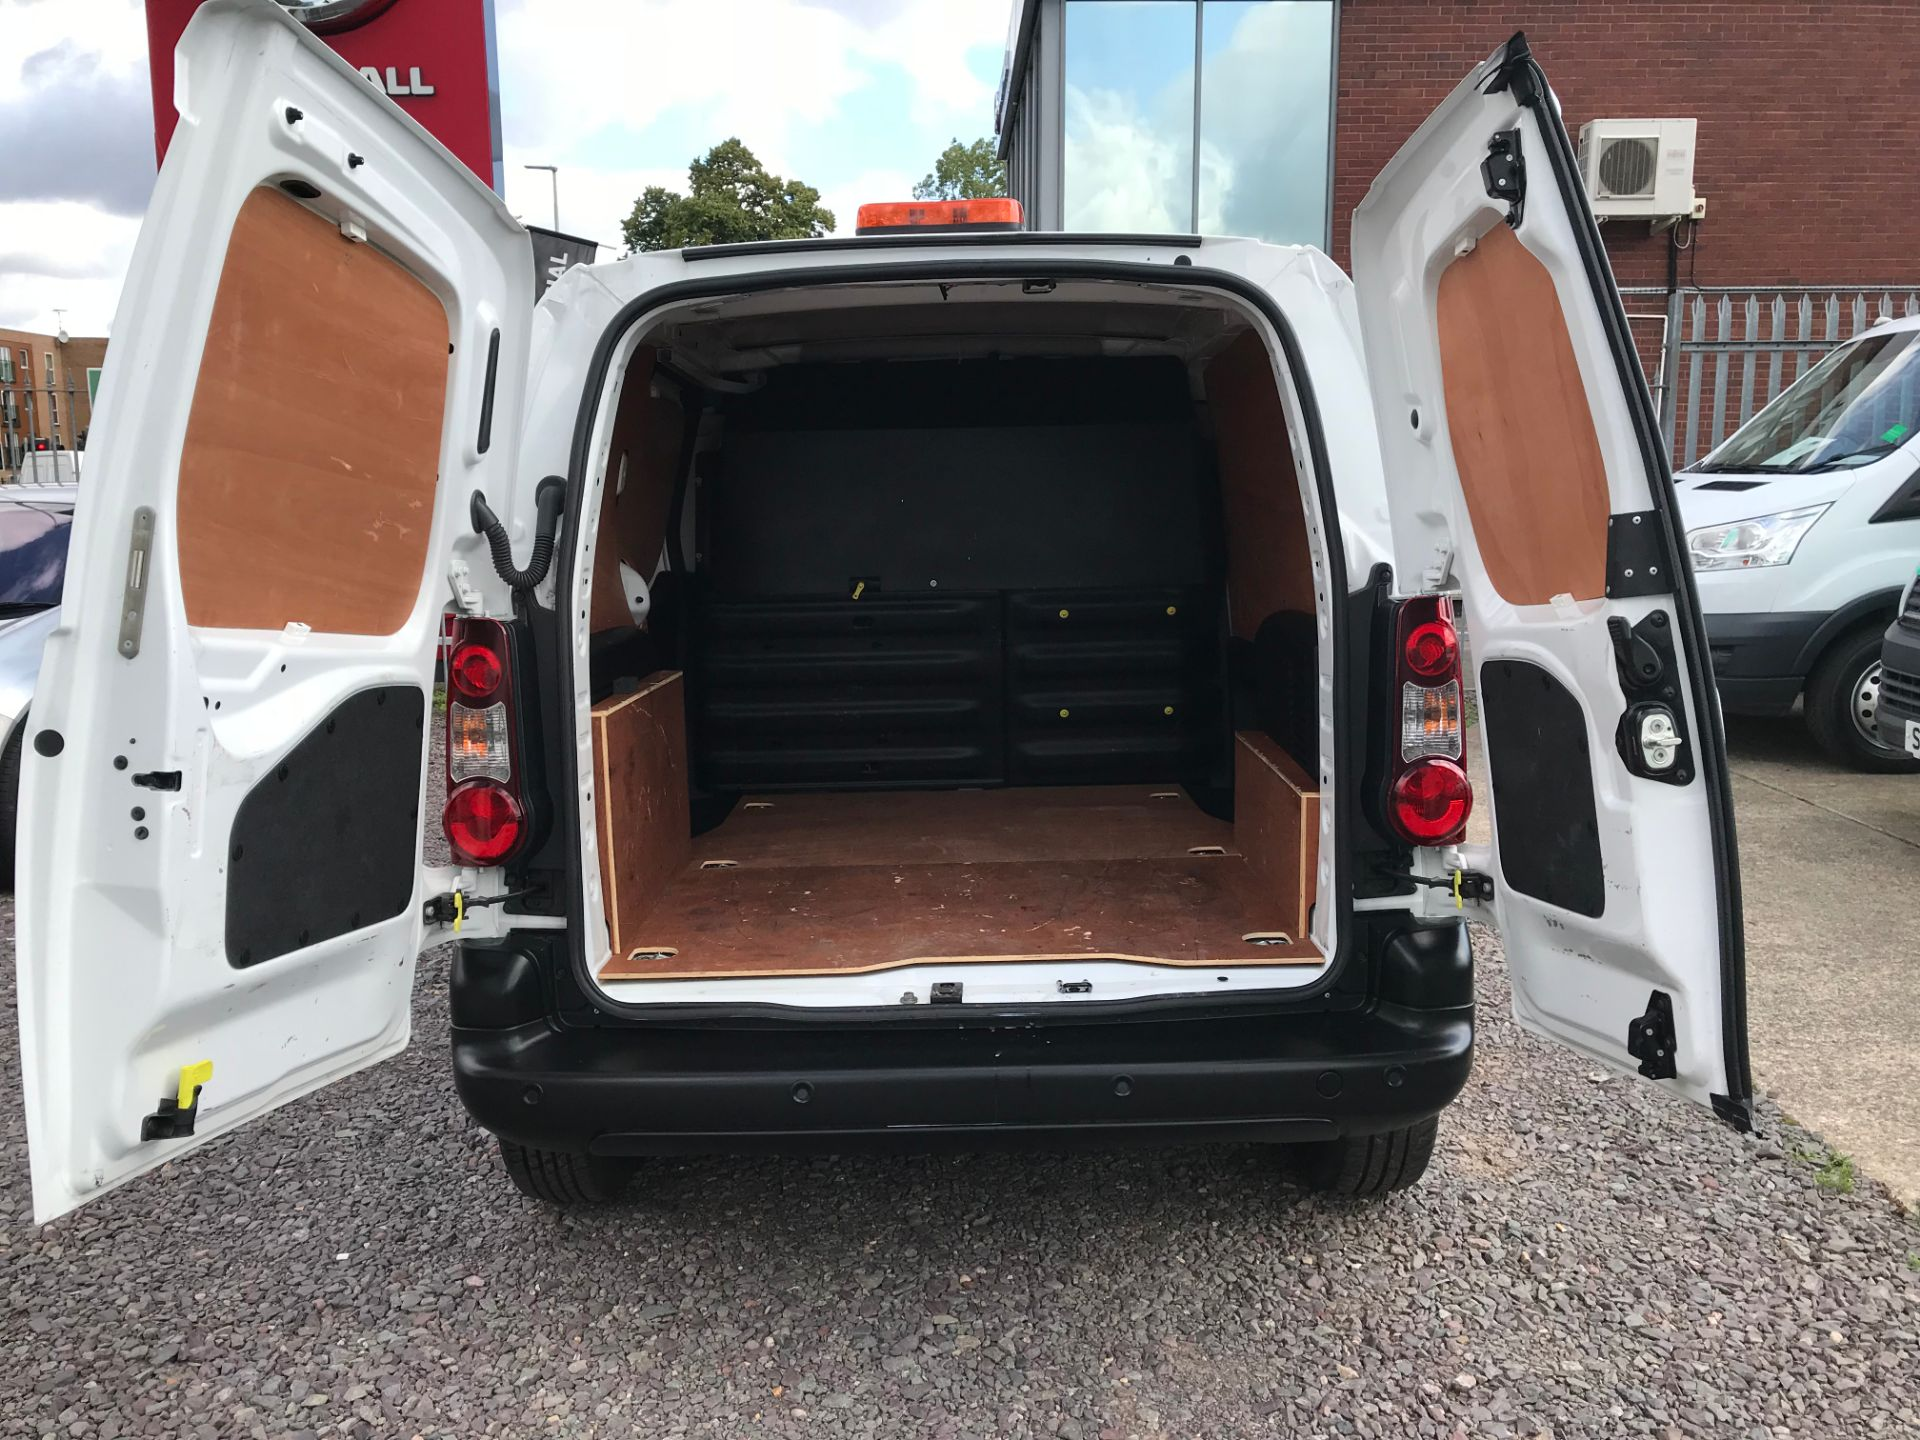 2016 Peugeot Partner L1 850 S 1.6 92PS (SLD) PROFESSIONAL 3 SEATS EURO 5  (OY16ZWS) Image 6